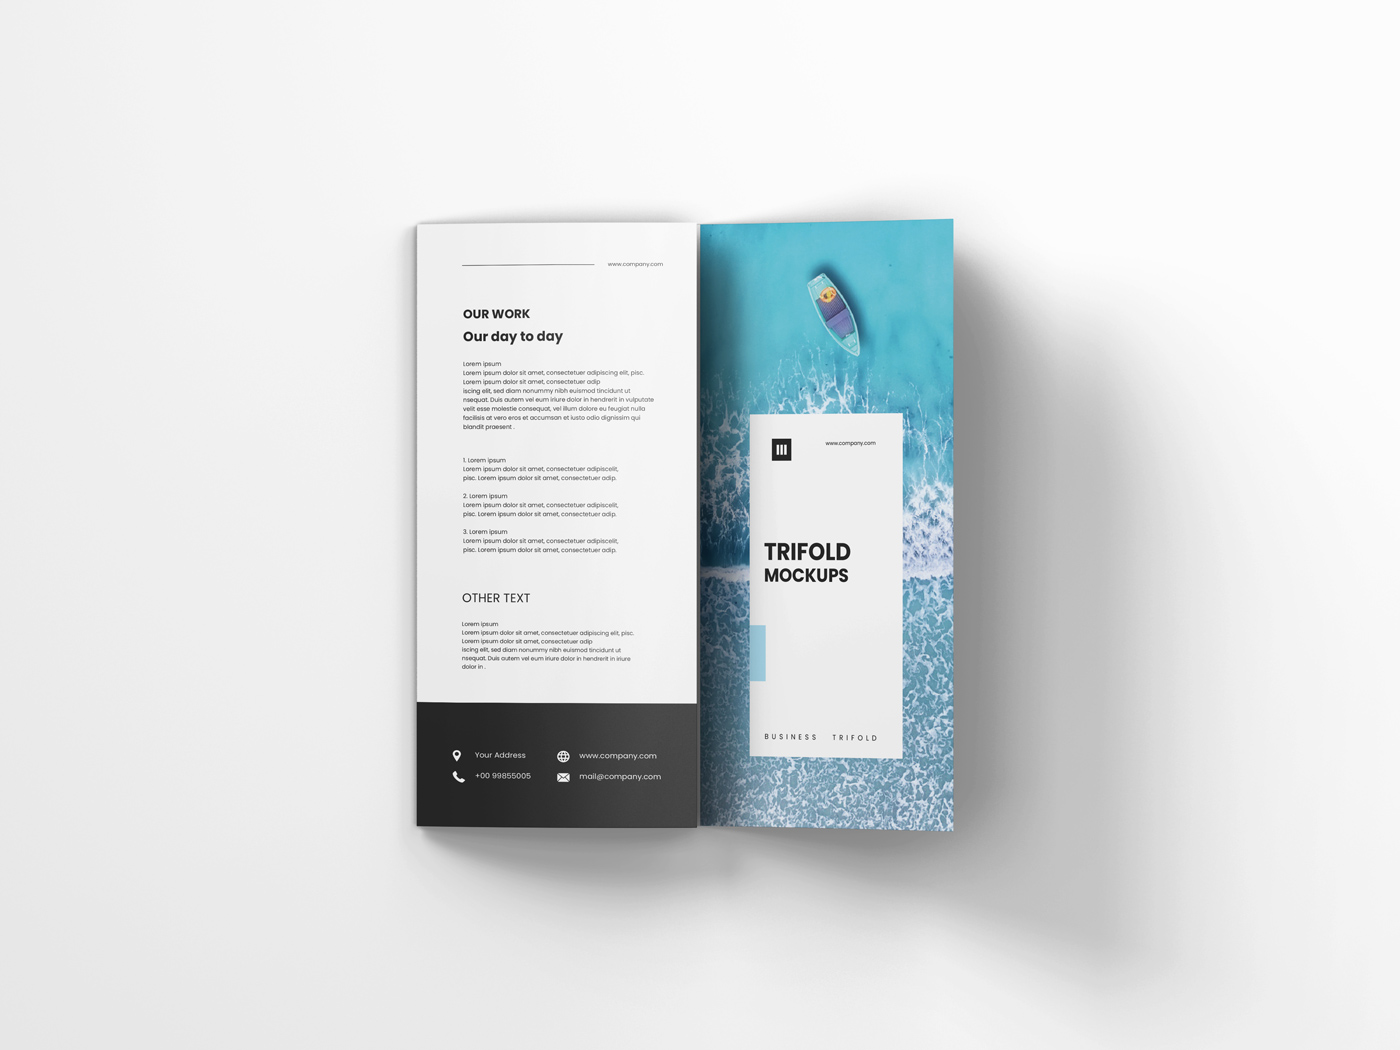 A4 Trifold Mockups V3 example image 6